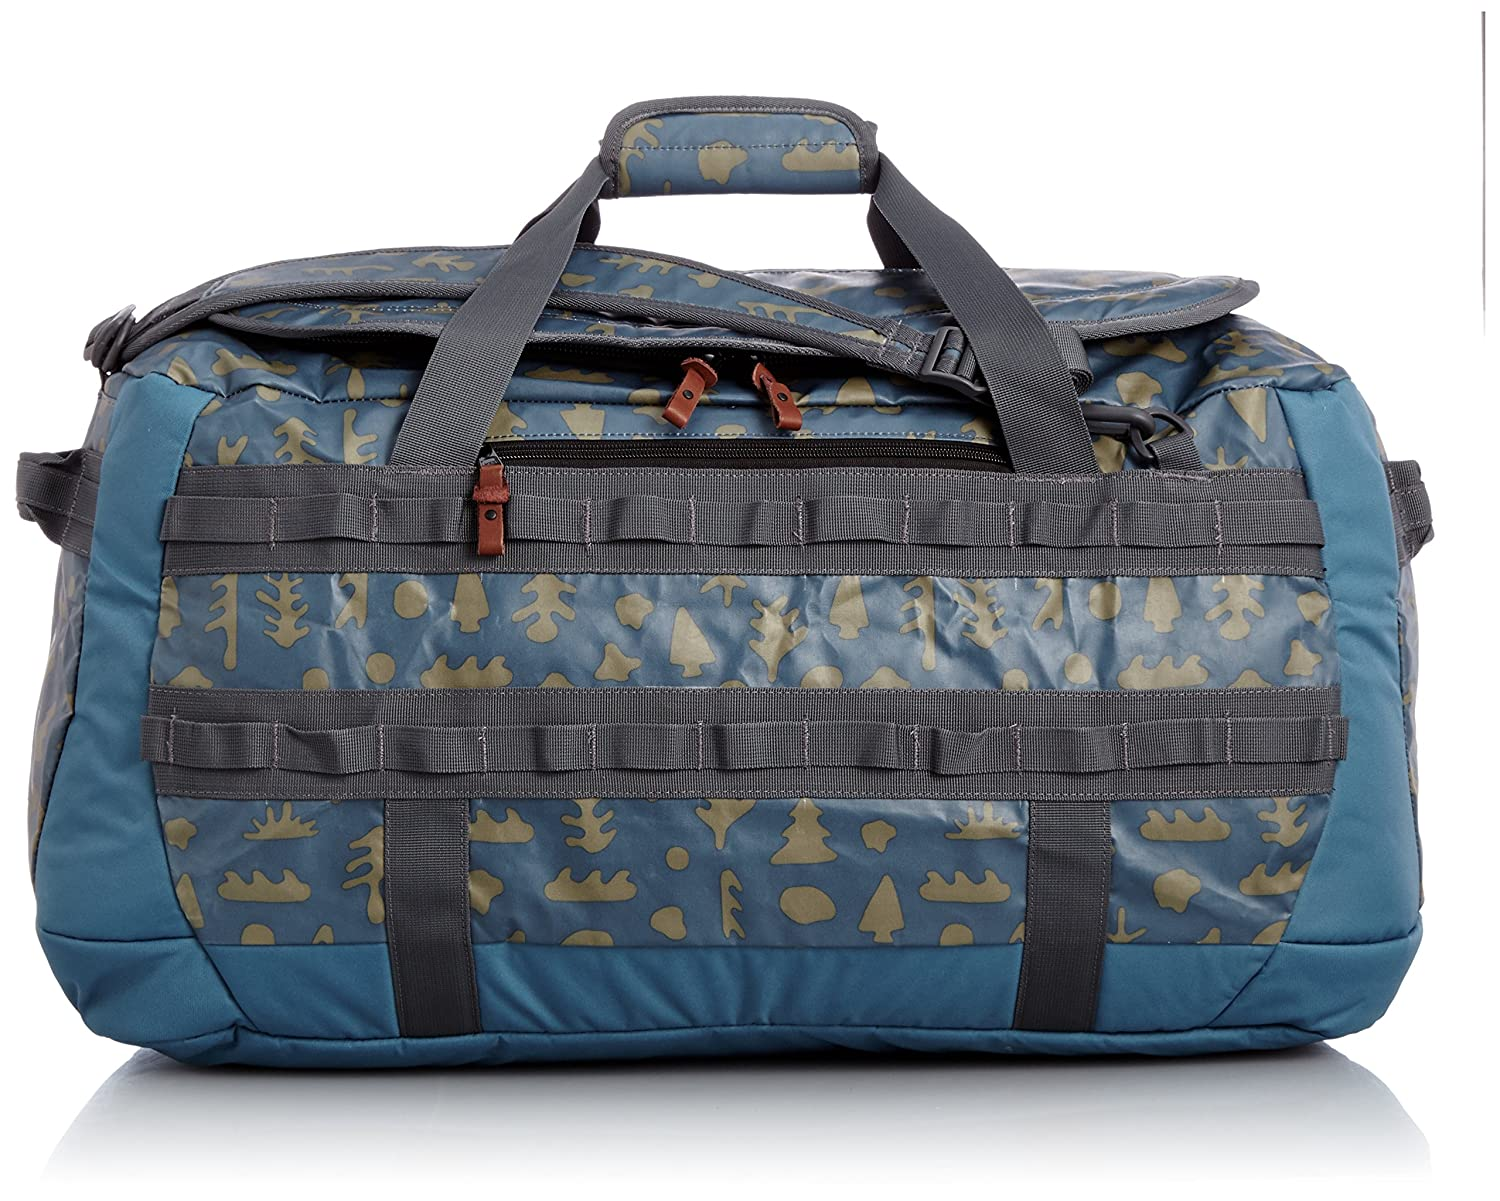 Poler Stuff Bag Wet Dry Duffel